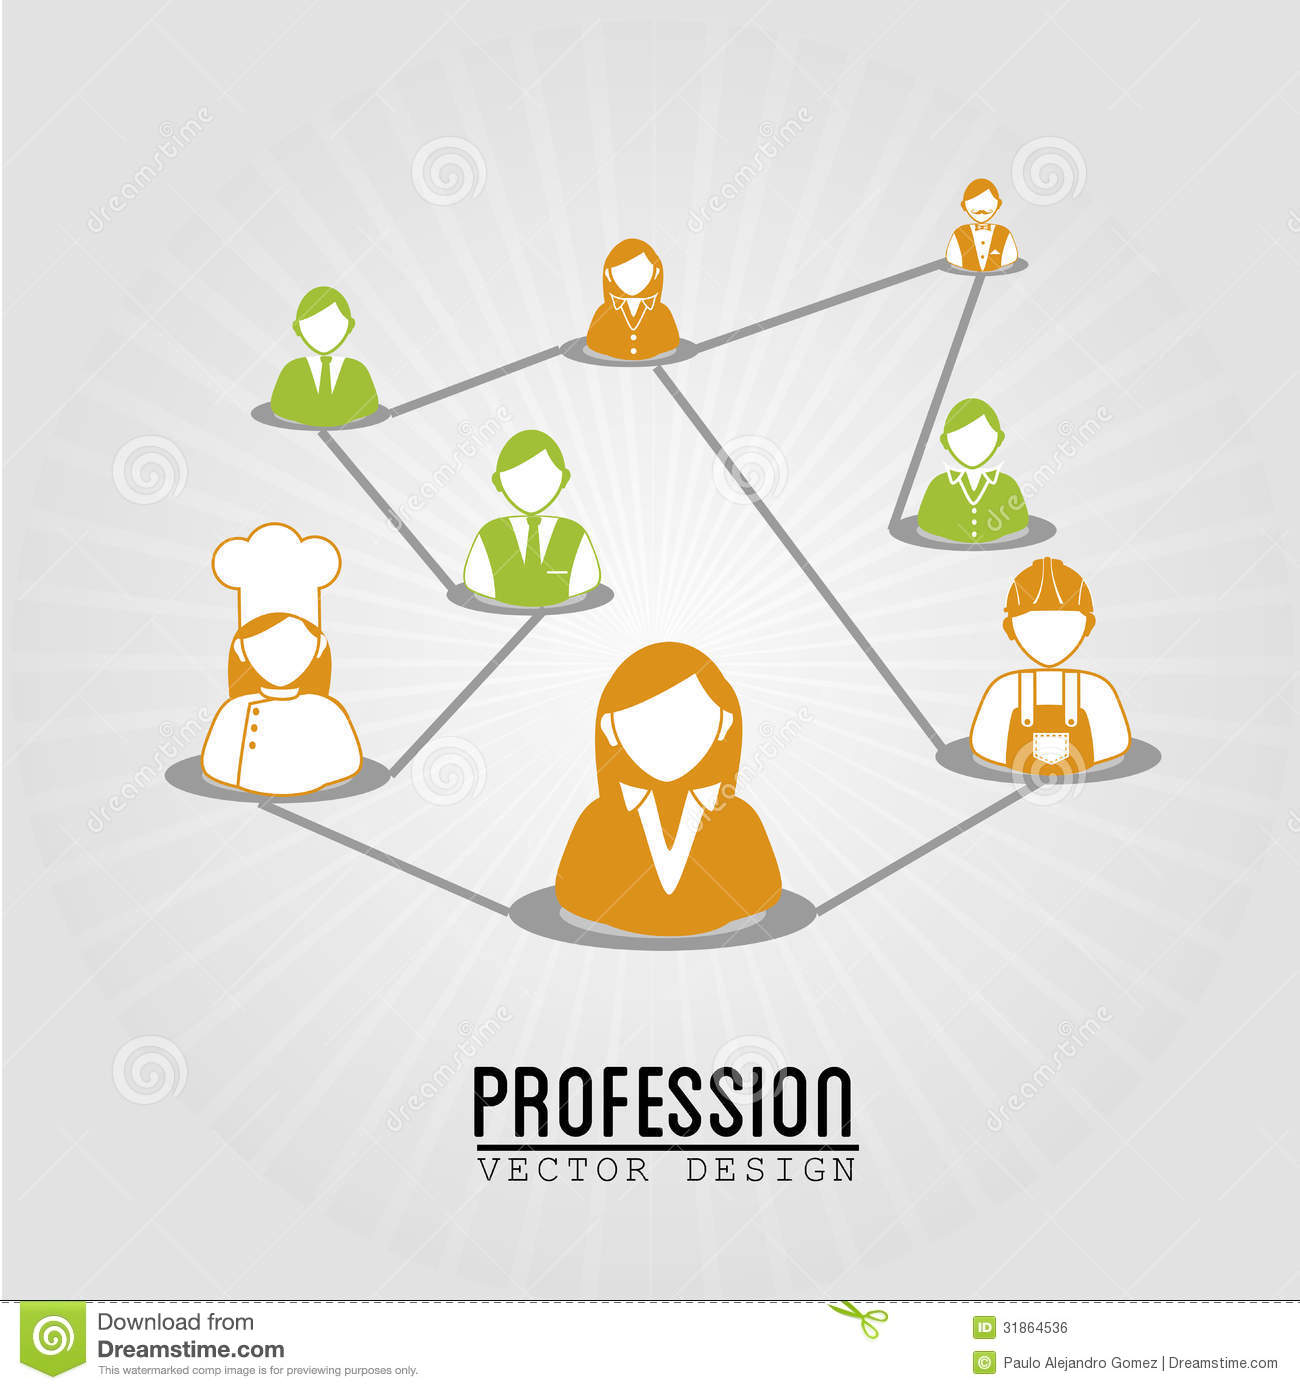 Profession design over blue background vector illustration